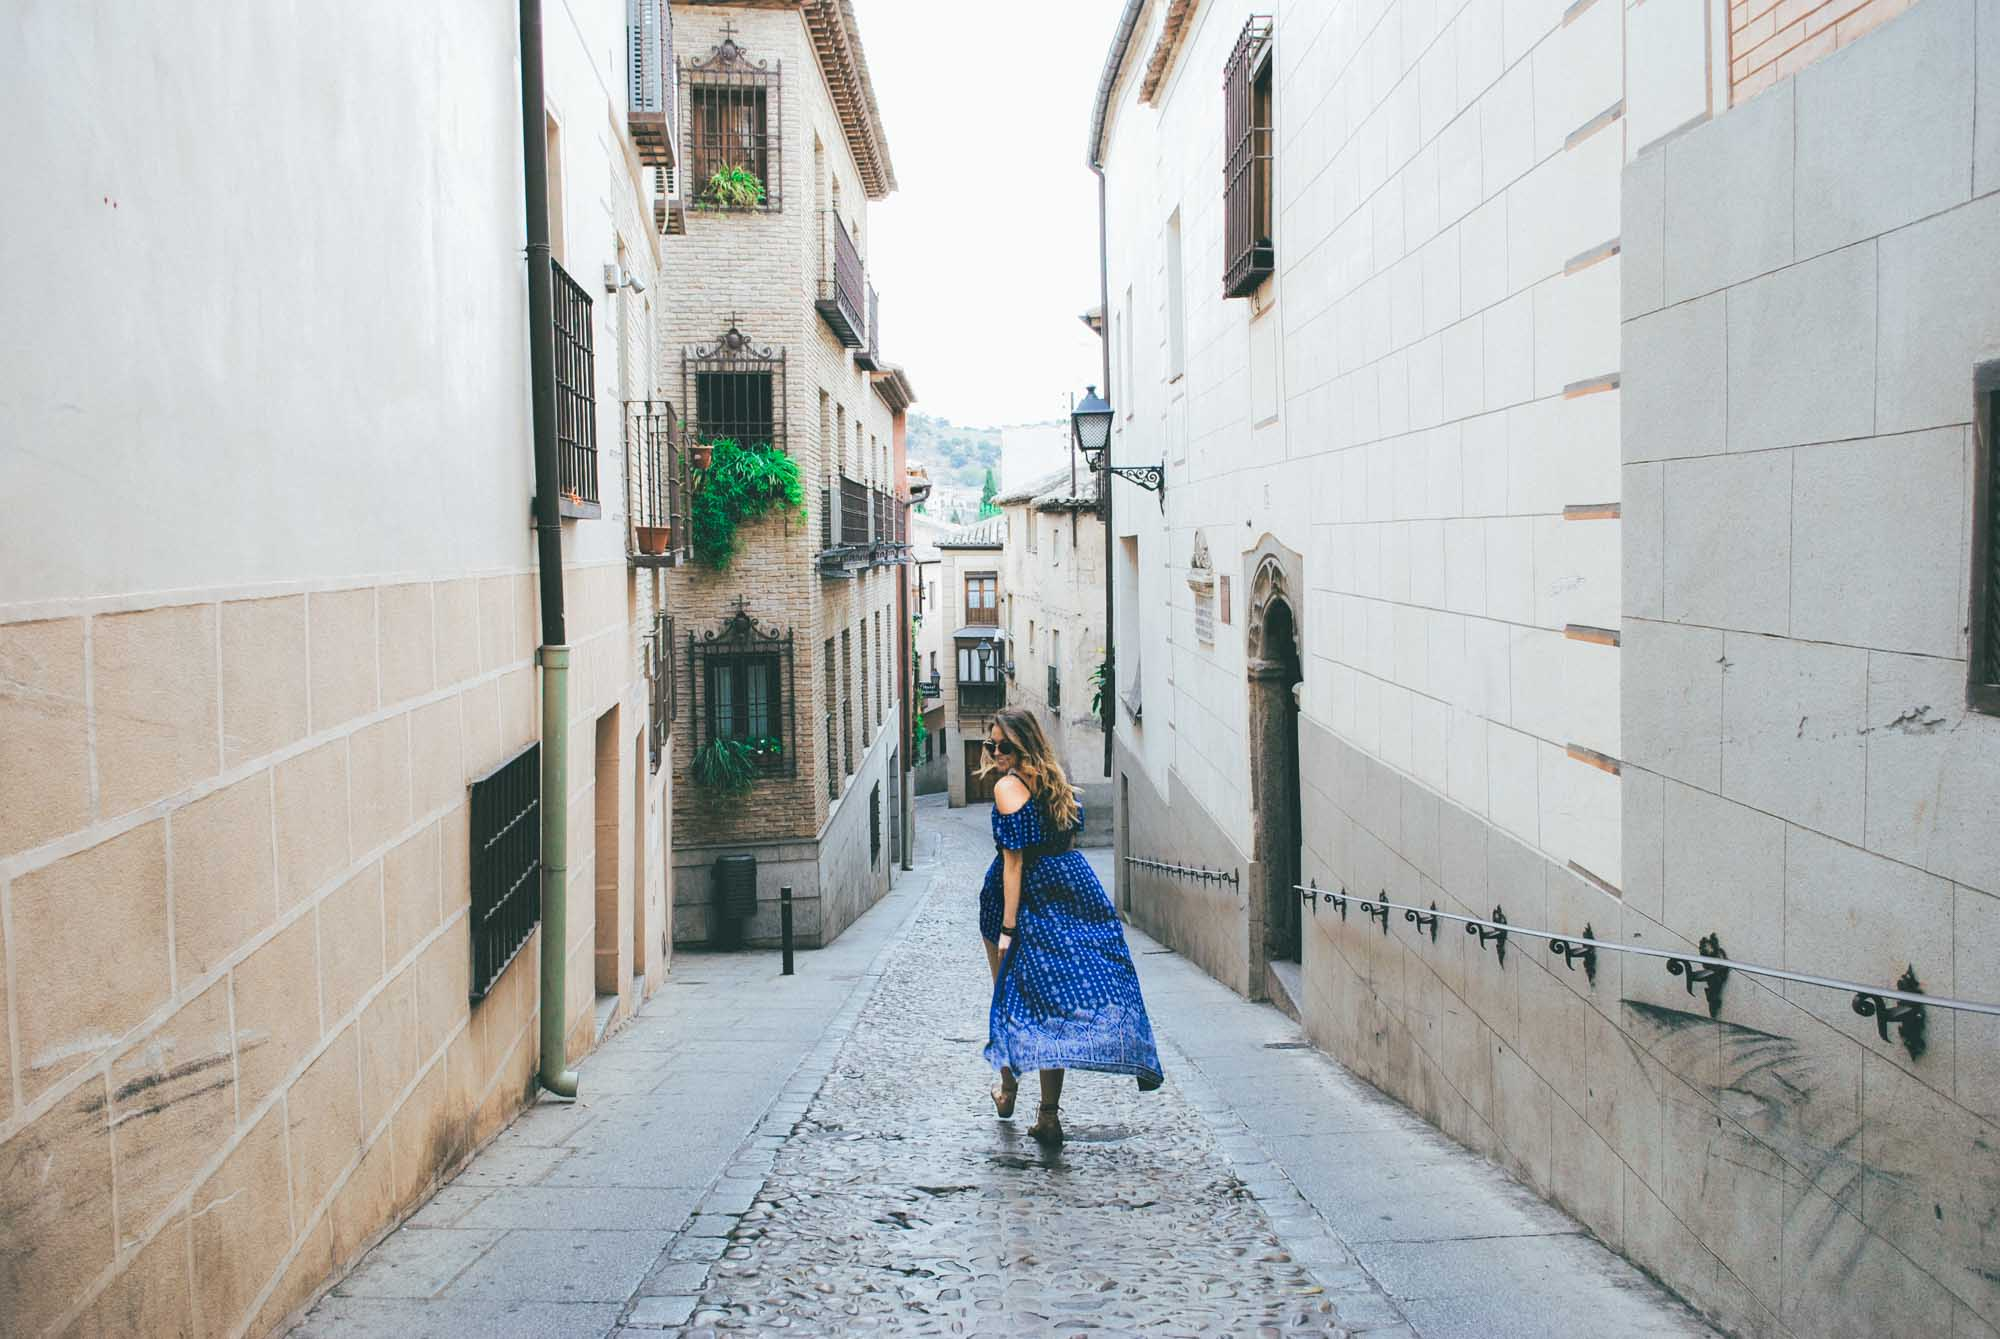 Brb, Inside a Fairytale: A Day Trip to Toledo